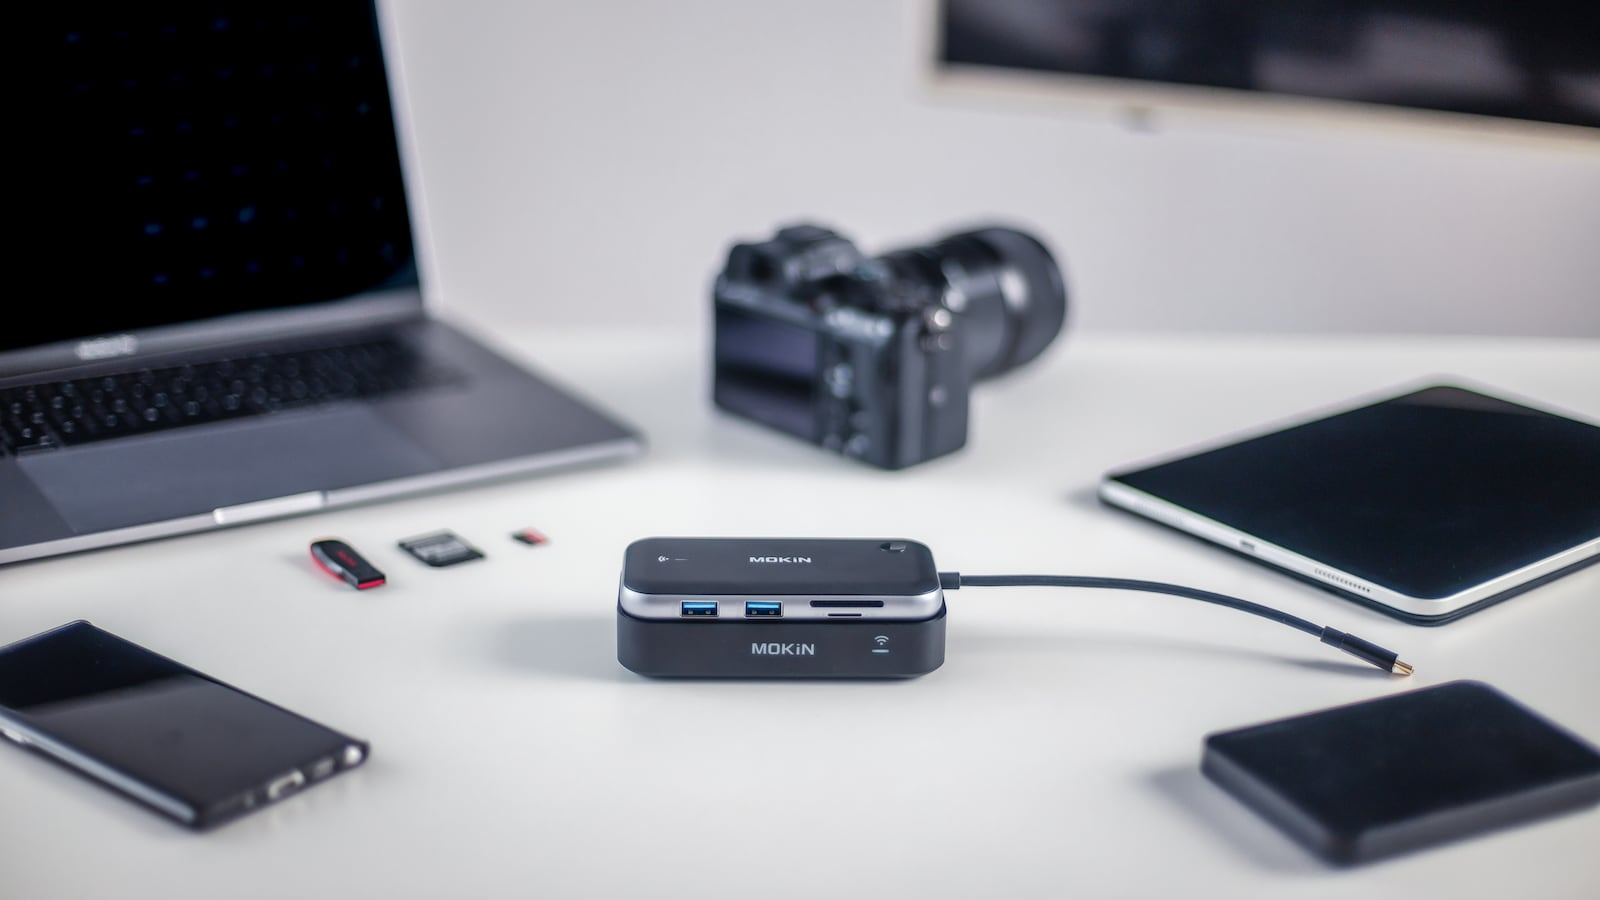 MOKiN Ultra-Low Latency Wireless Display Transmitter features a USB-C hub